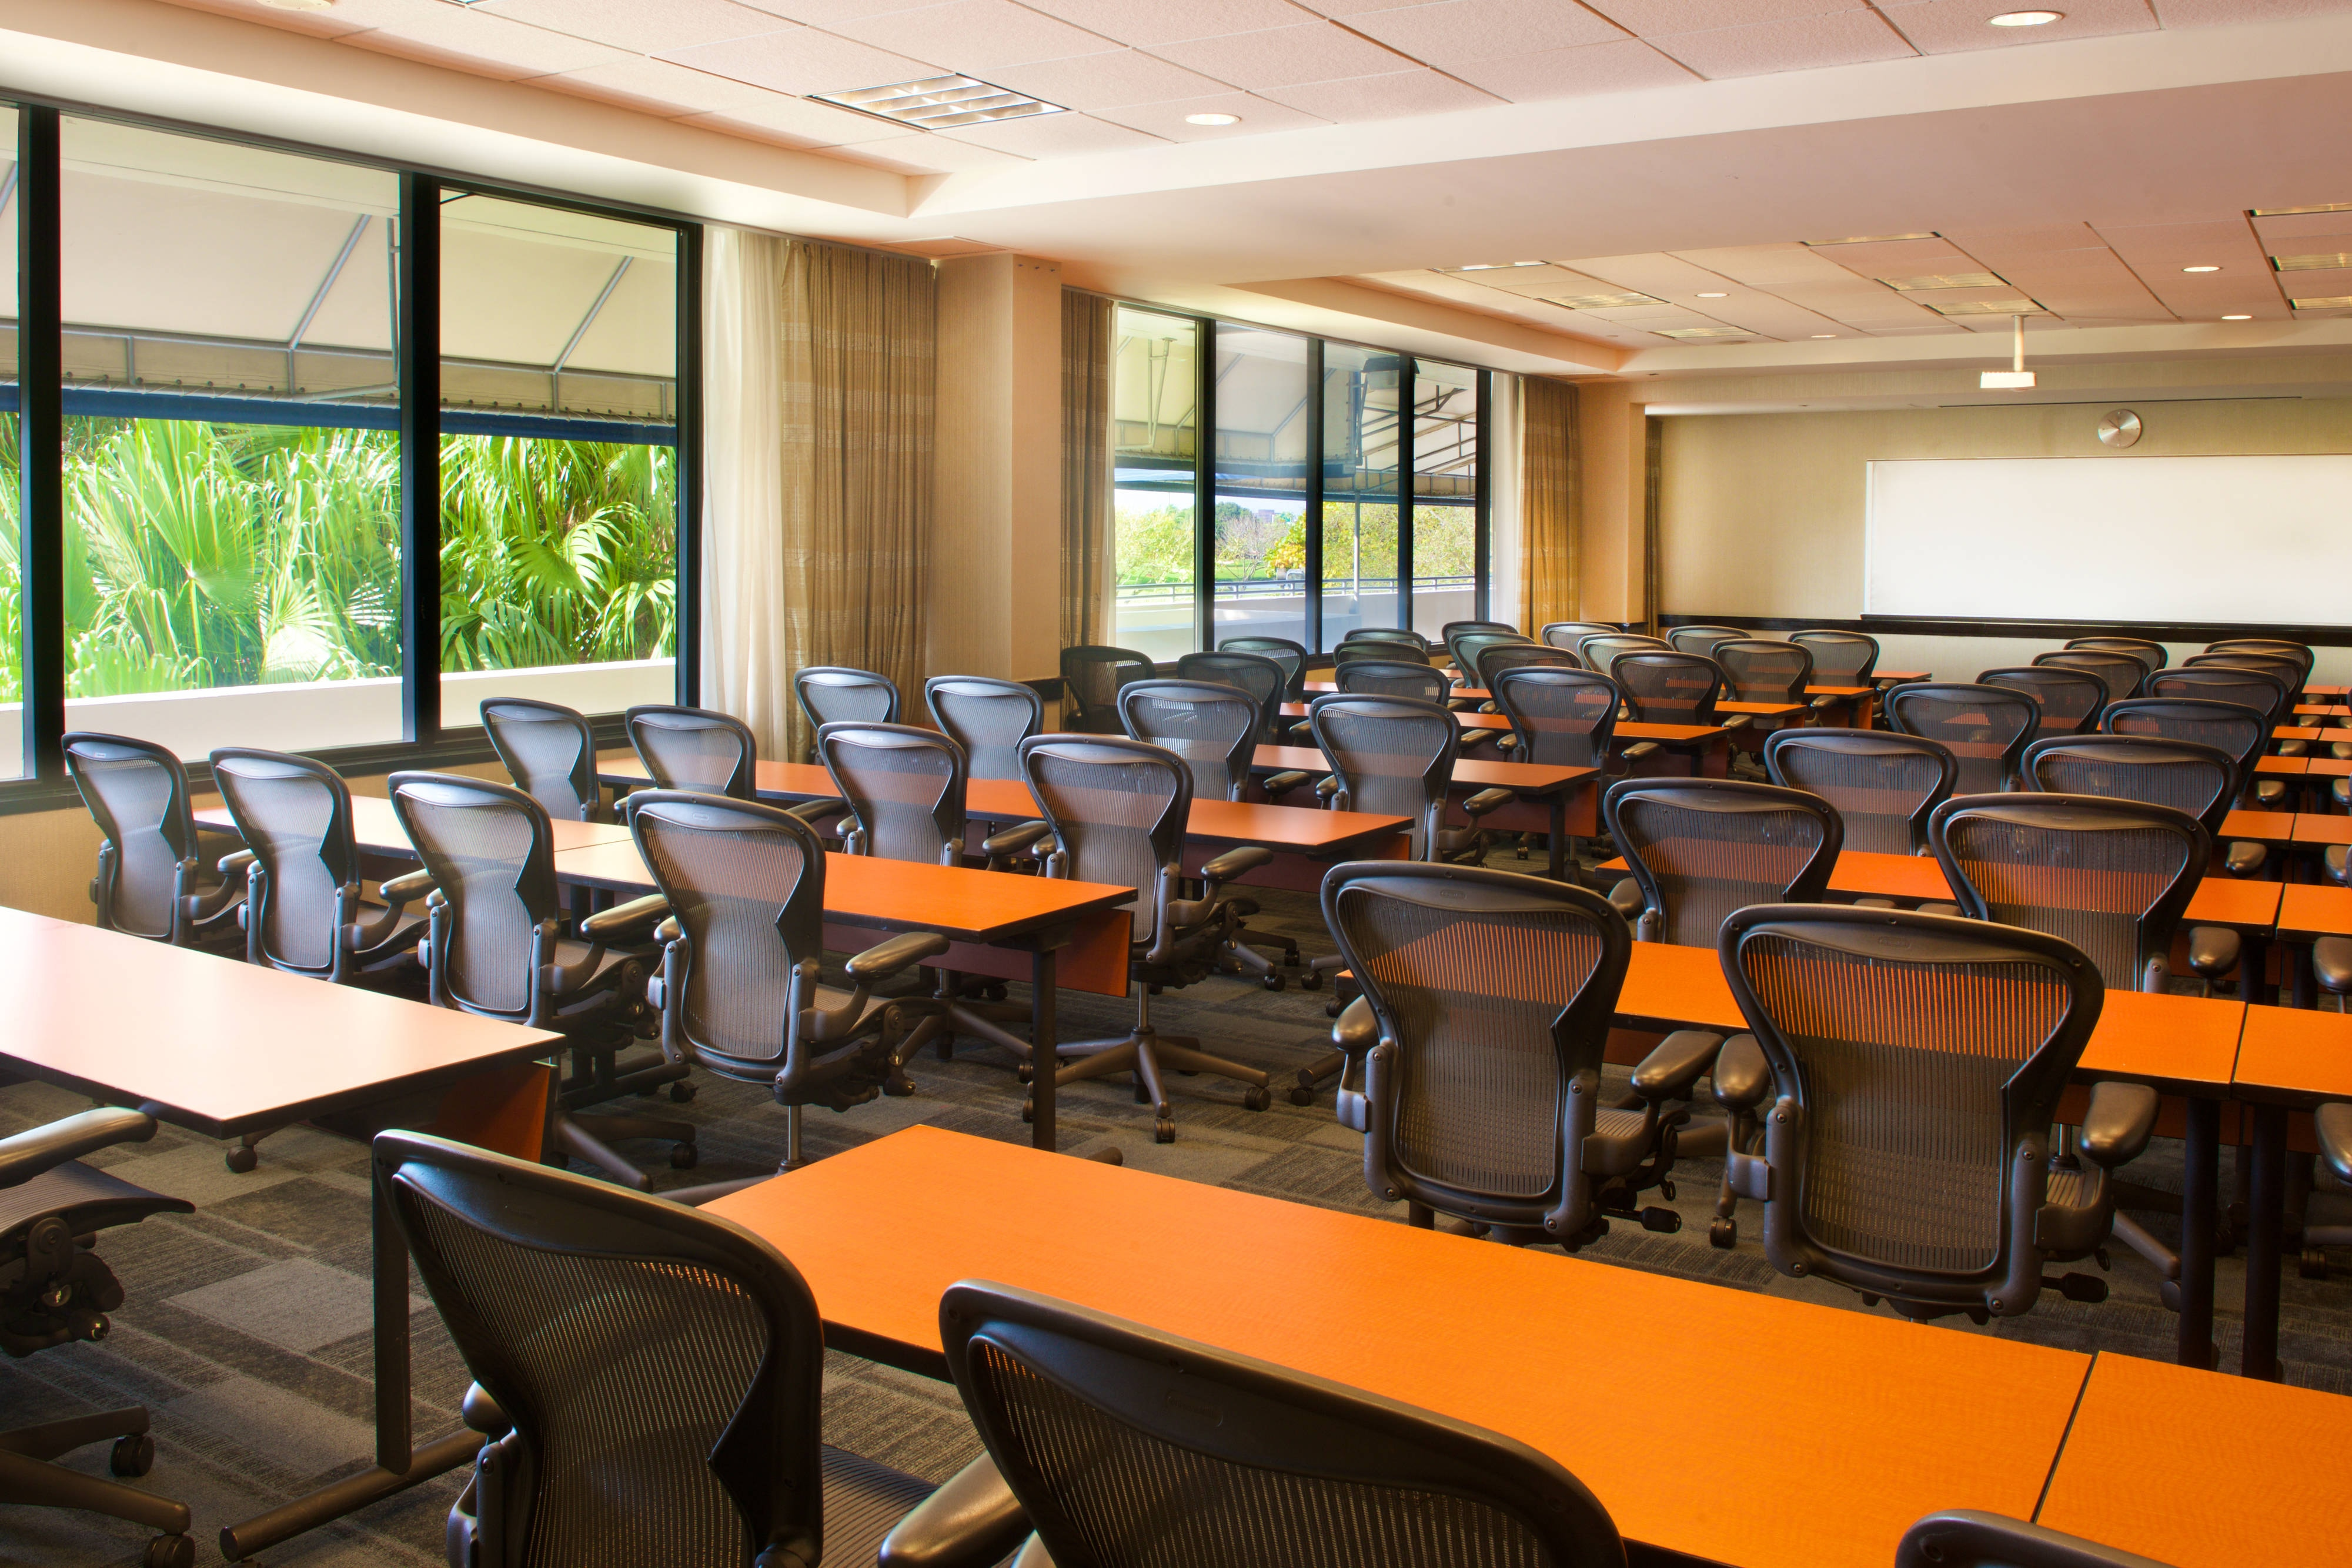 California Clipper Meeting Space Classroom Set up